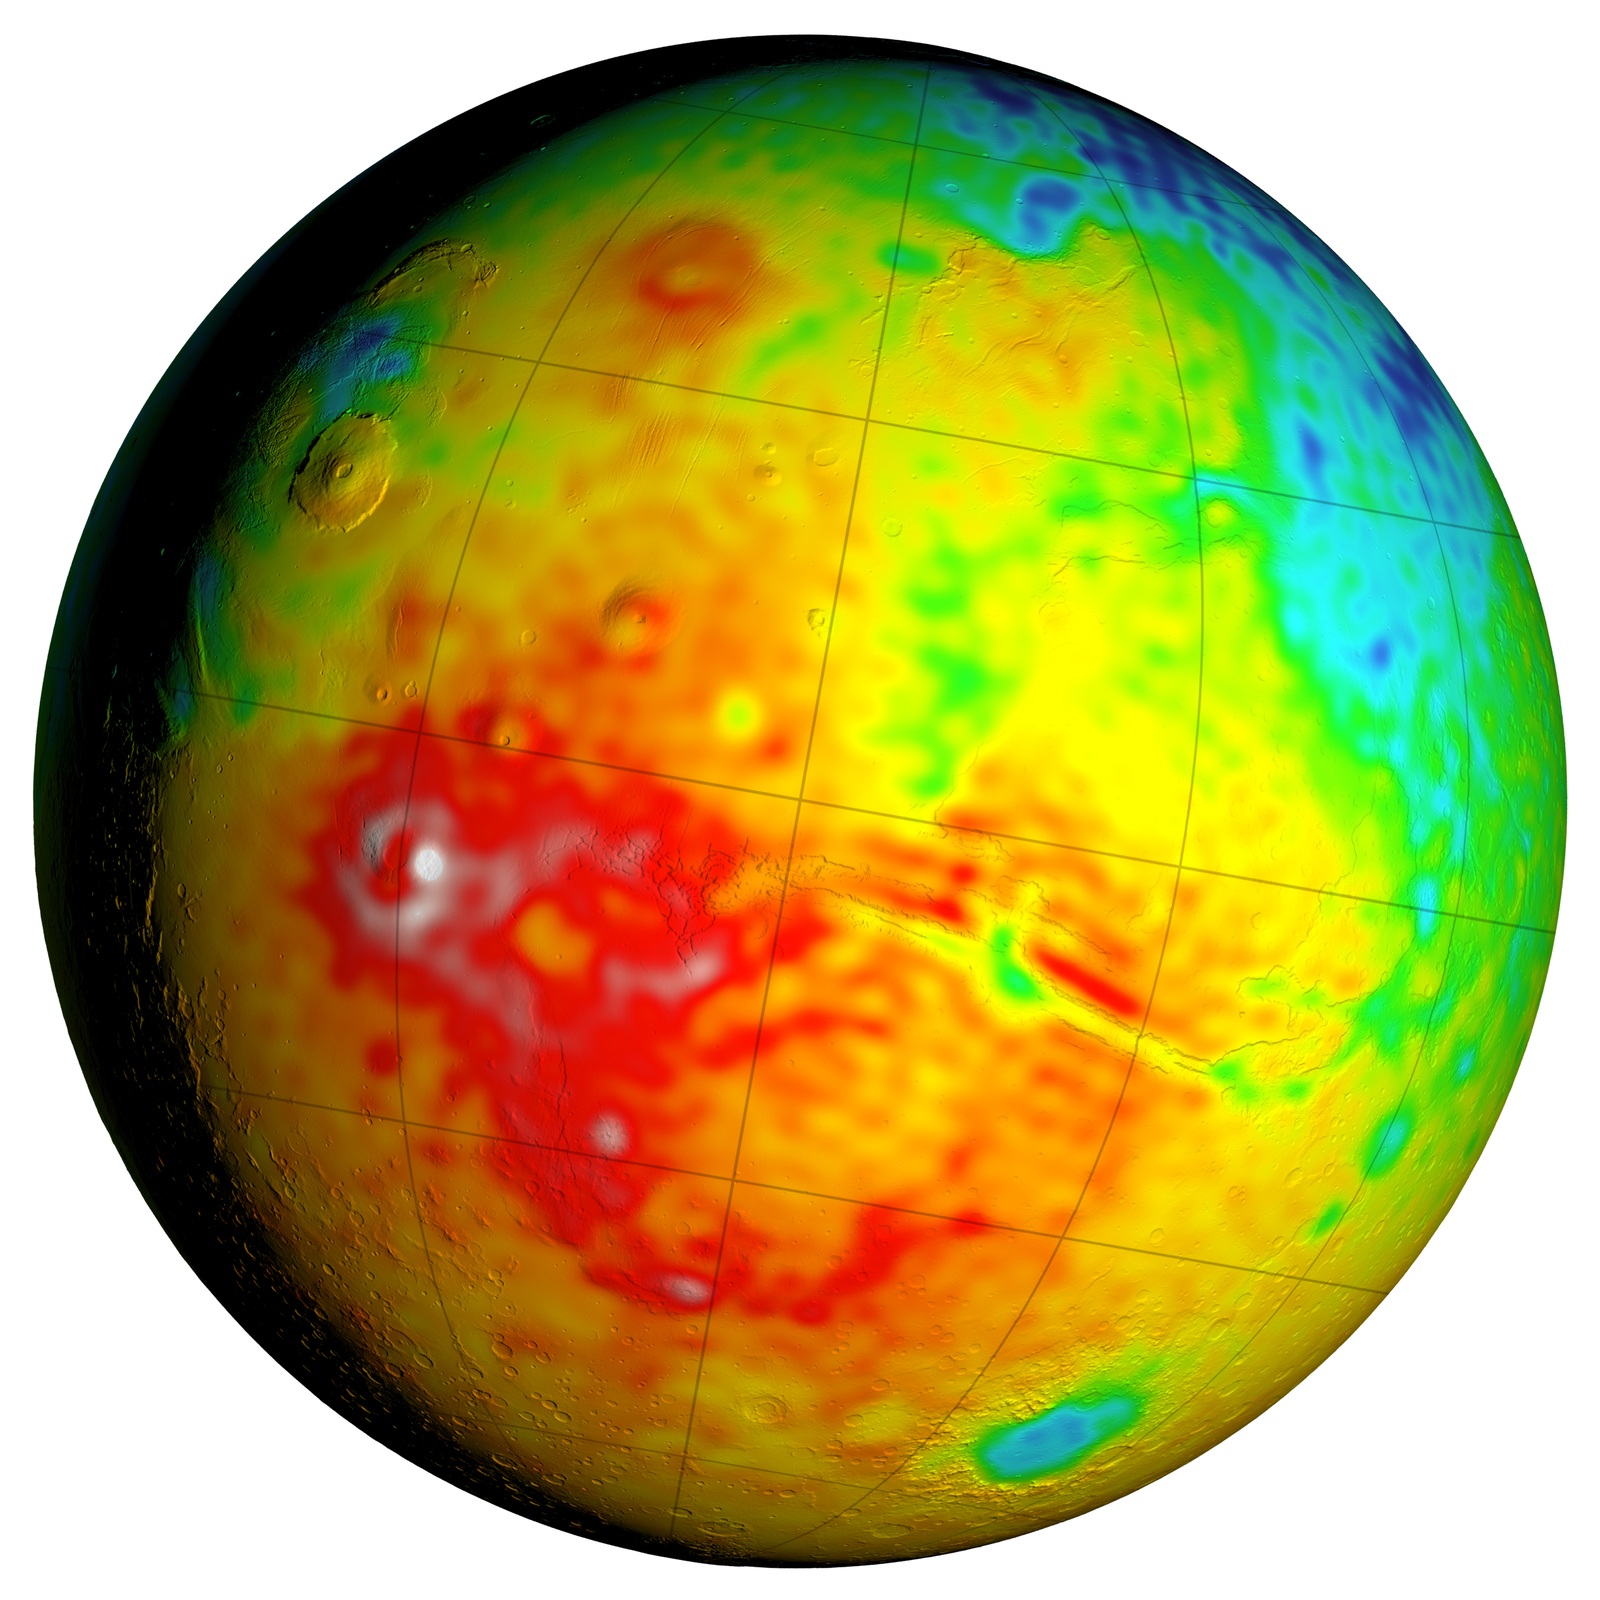 This Mars map shows variations in thickness of the planet's crust, the relatively thin surface layer overlying the mantle of the planet. It shows unprecedented detail derived from new mapping of variations in Mars' gravitational pull on orbiters.